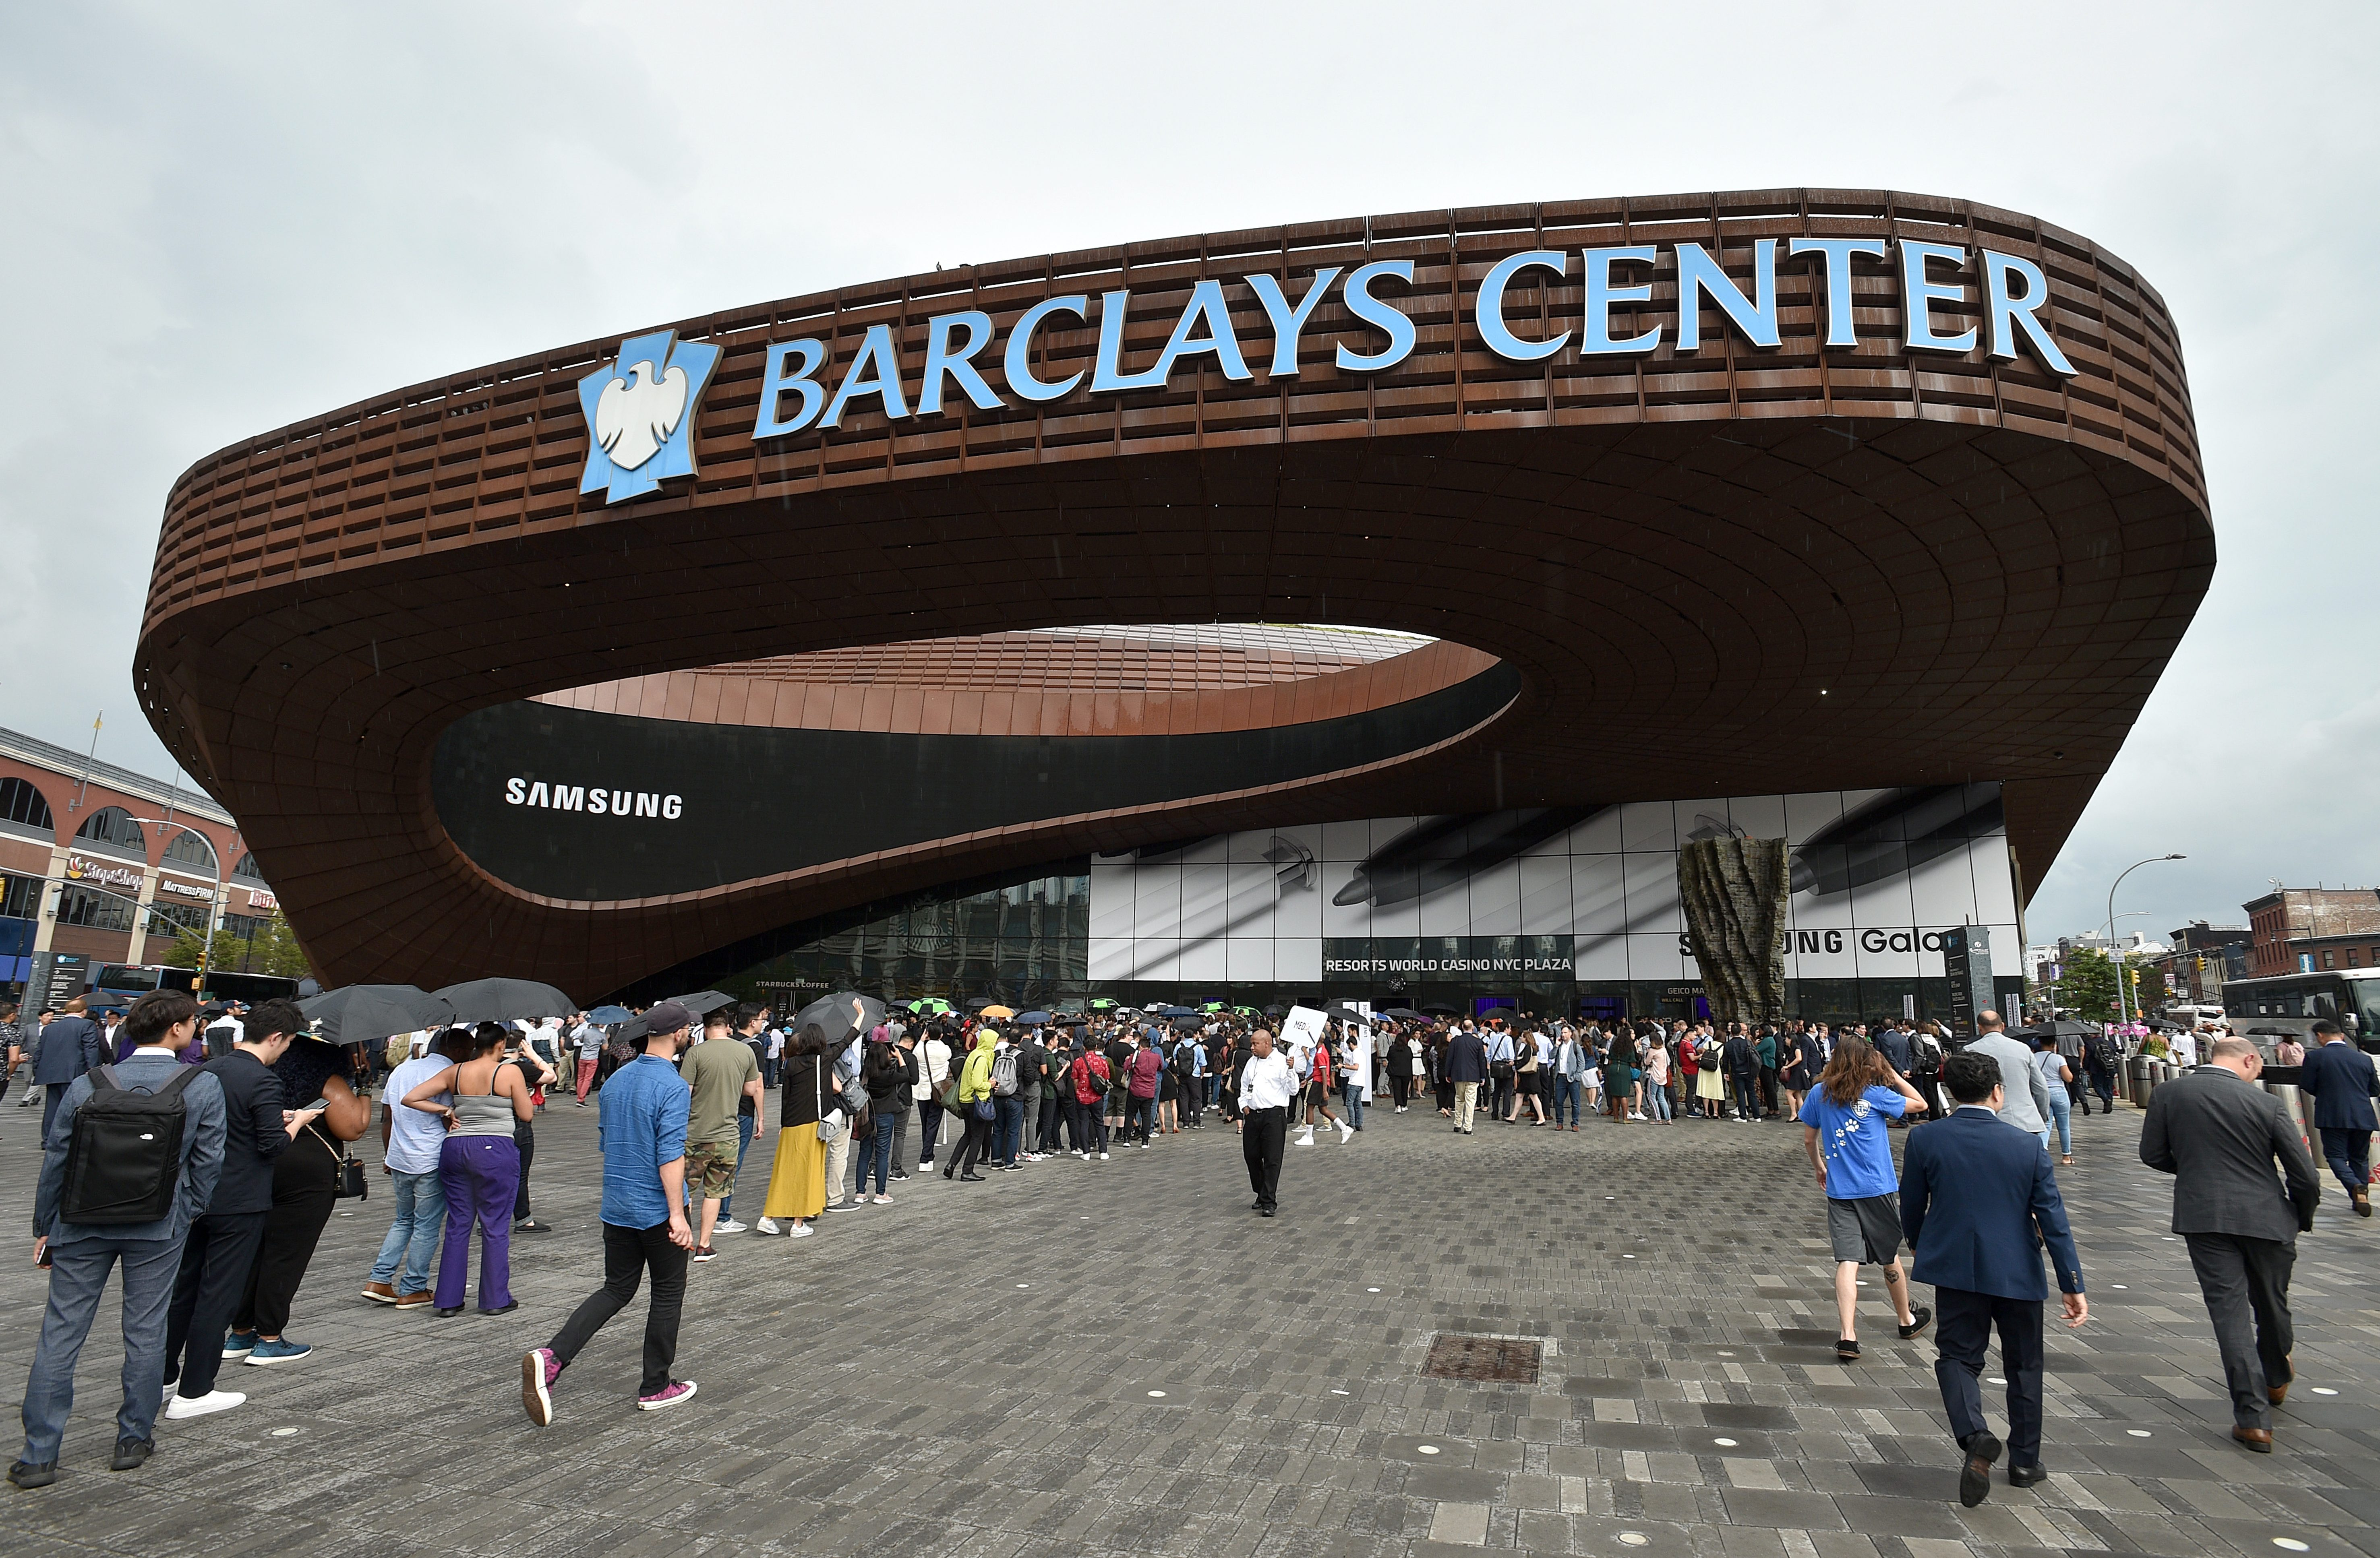 An outside view of the Barclays Center during Samsung Unpacked New York City at Barclays Center at Barclays Center on August 07, 2019 in New York City. (Photo by Bryan Bedder/Getty Images for Samsung)